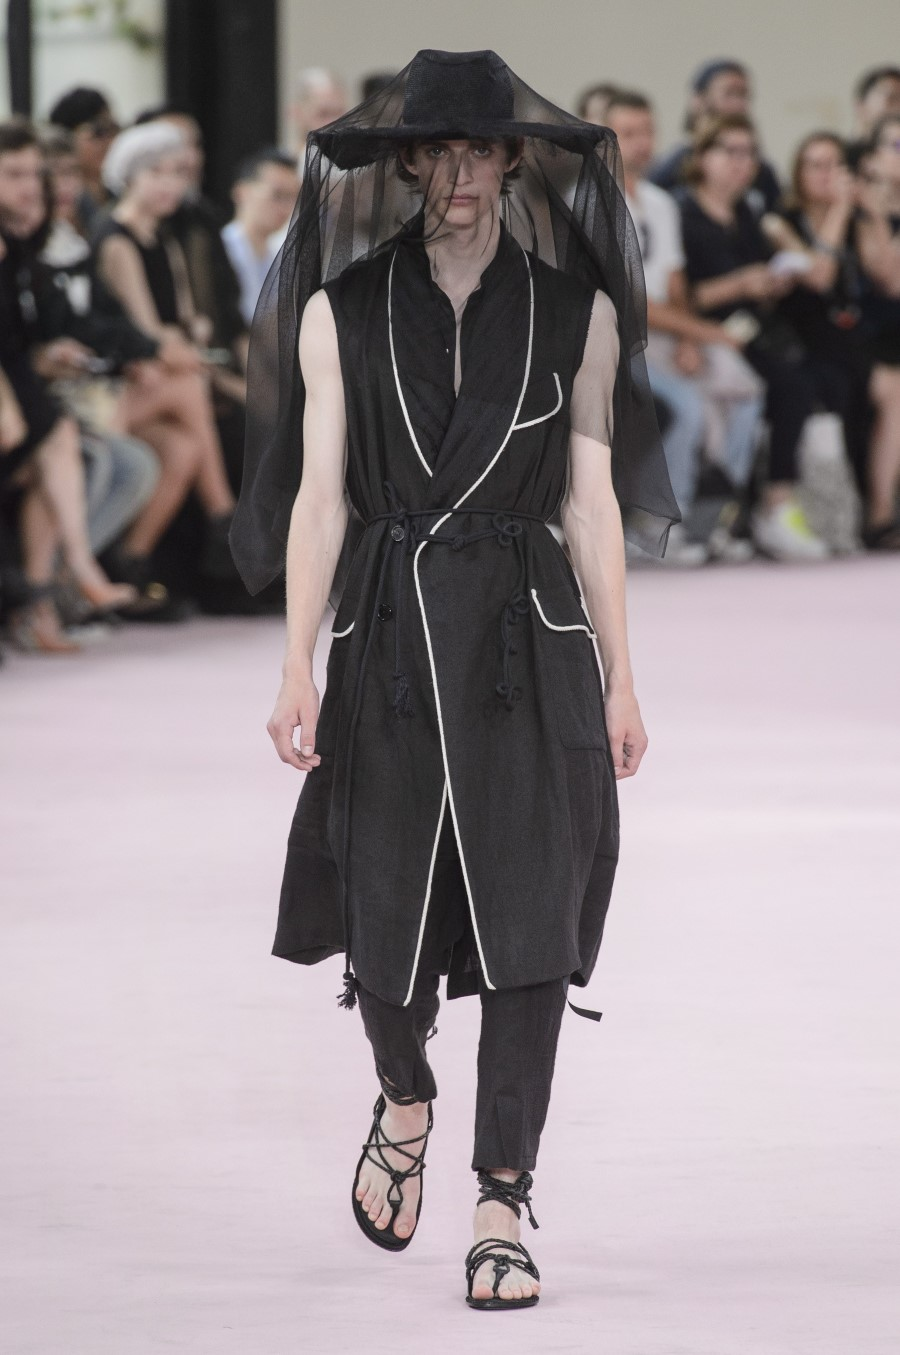 Ann Demeulemeester Spring/Summer 2019 - Paris Fashion Week